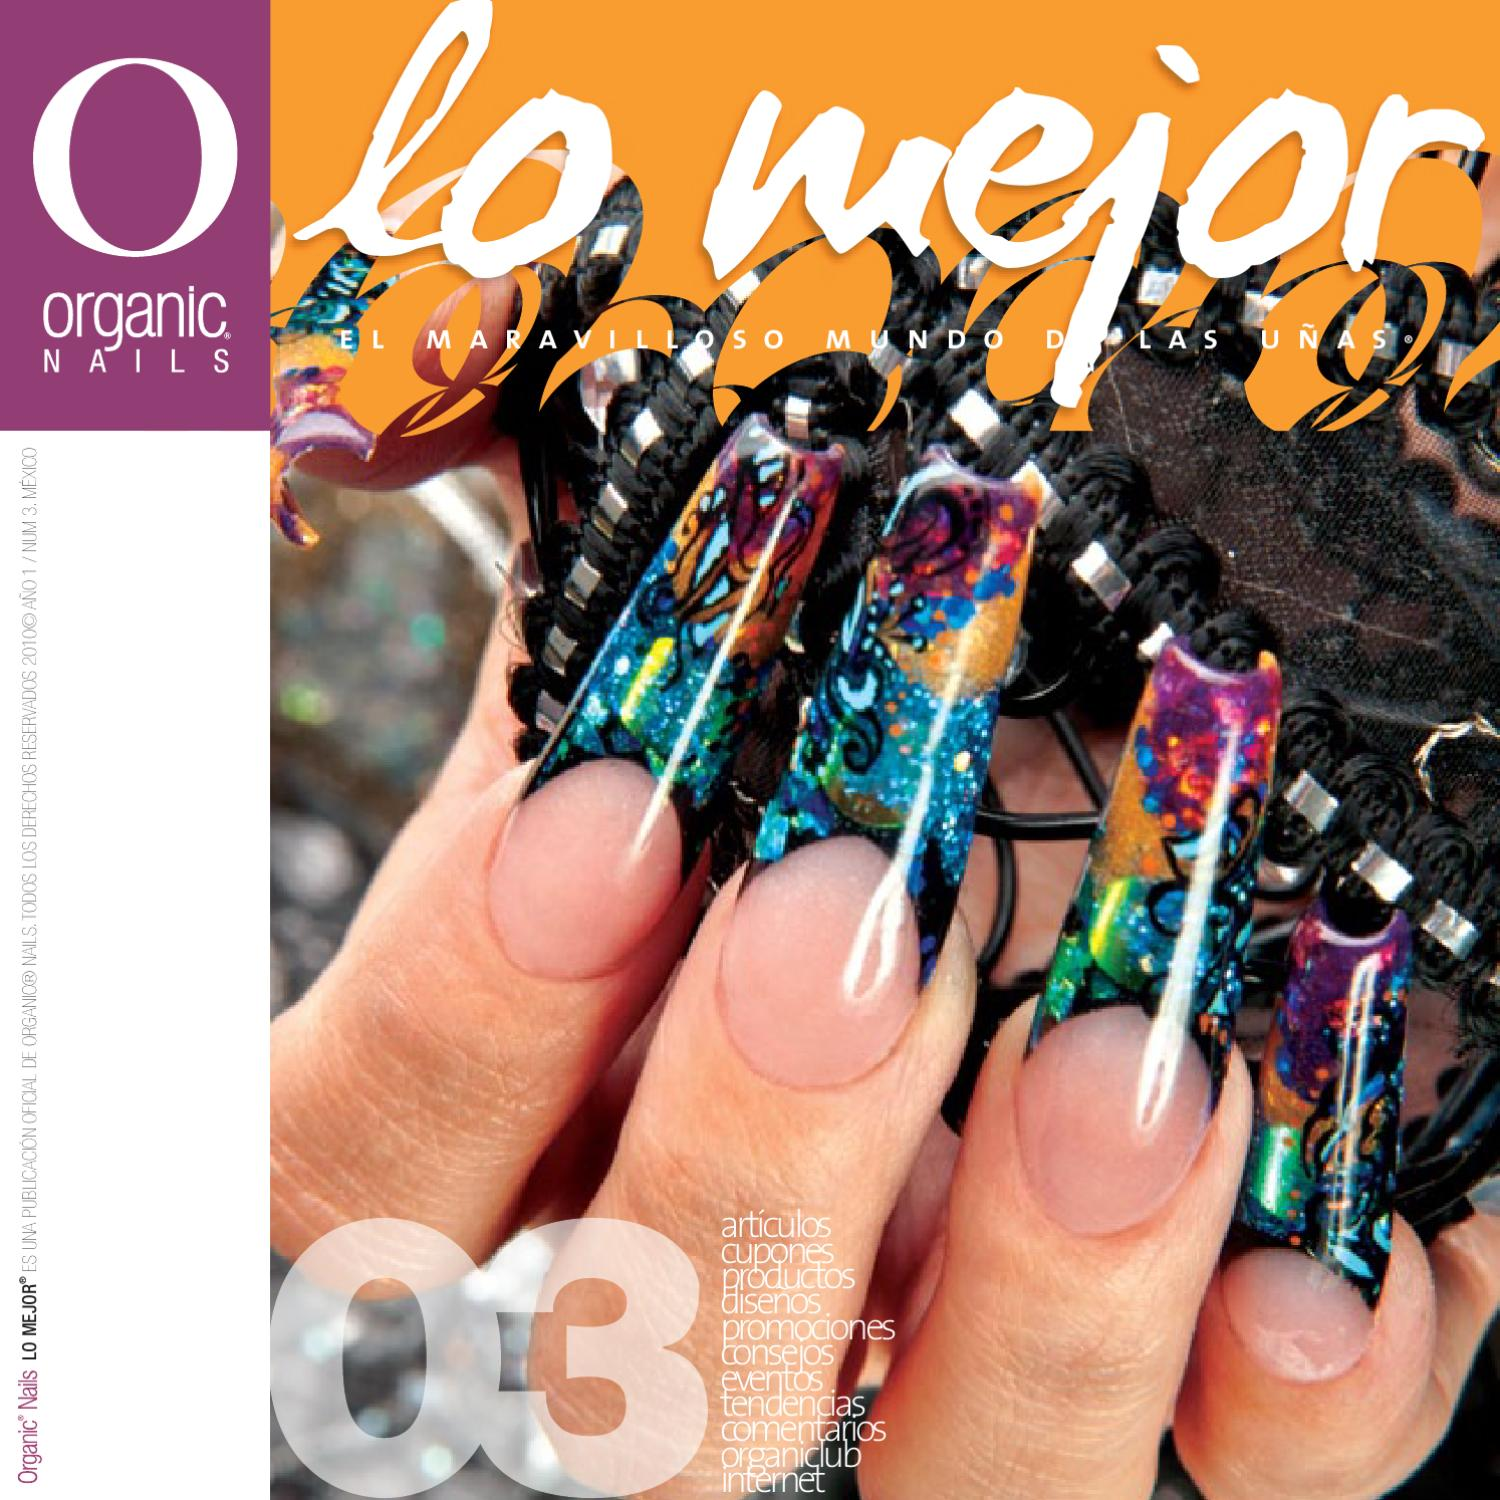 Lo Mejor 03 / Organic® Nails by Organic Nails® - issuu